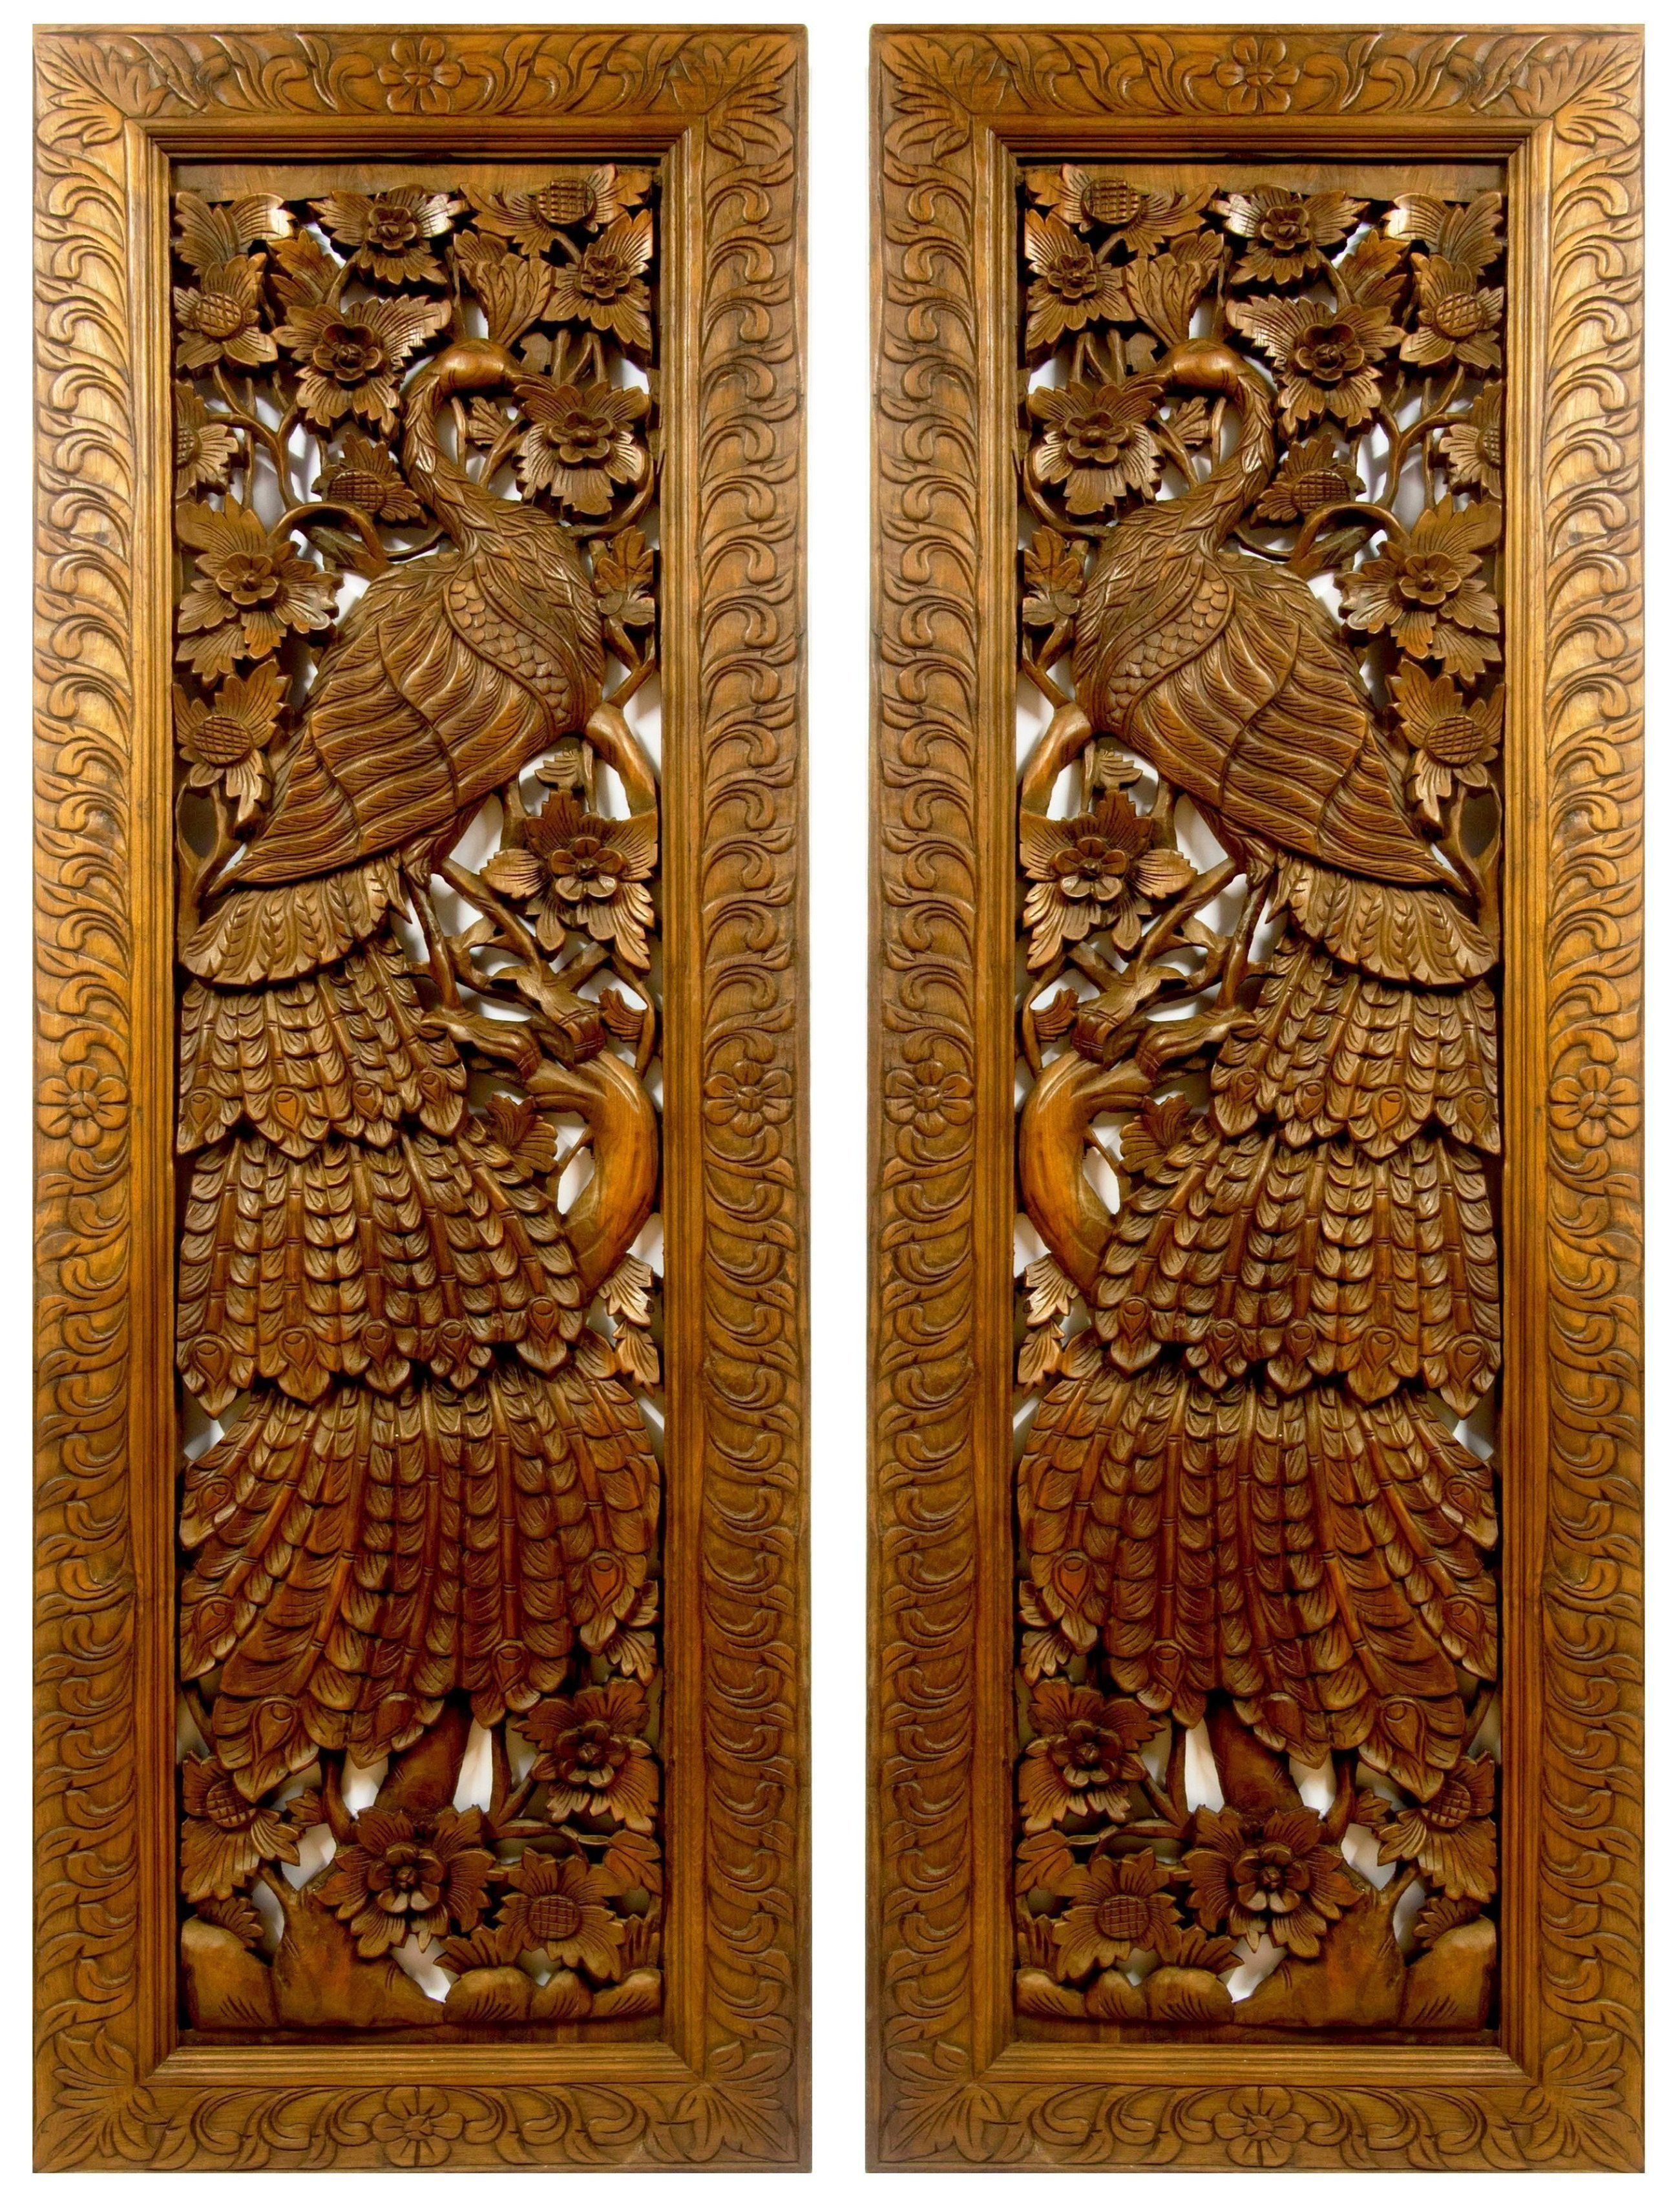 Giant Peacock 200 Cm 71 Inch Wood Carving Reclaimed